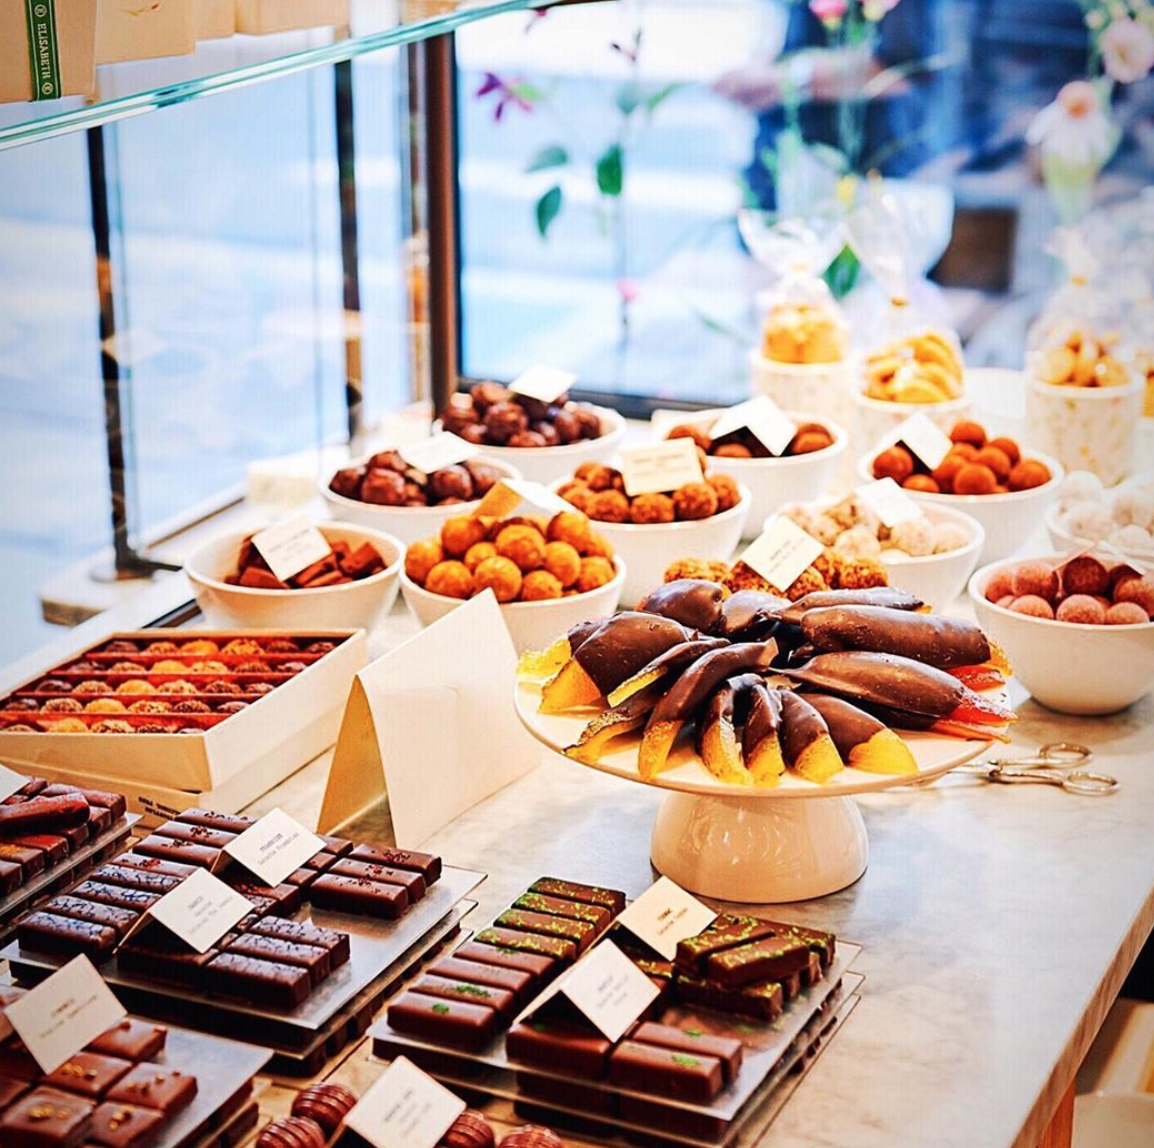 Chocolate shops in Brussels